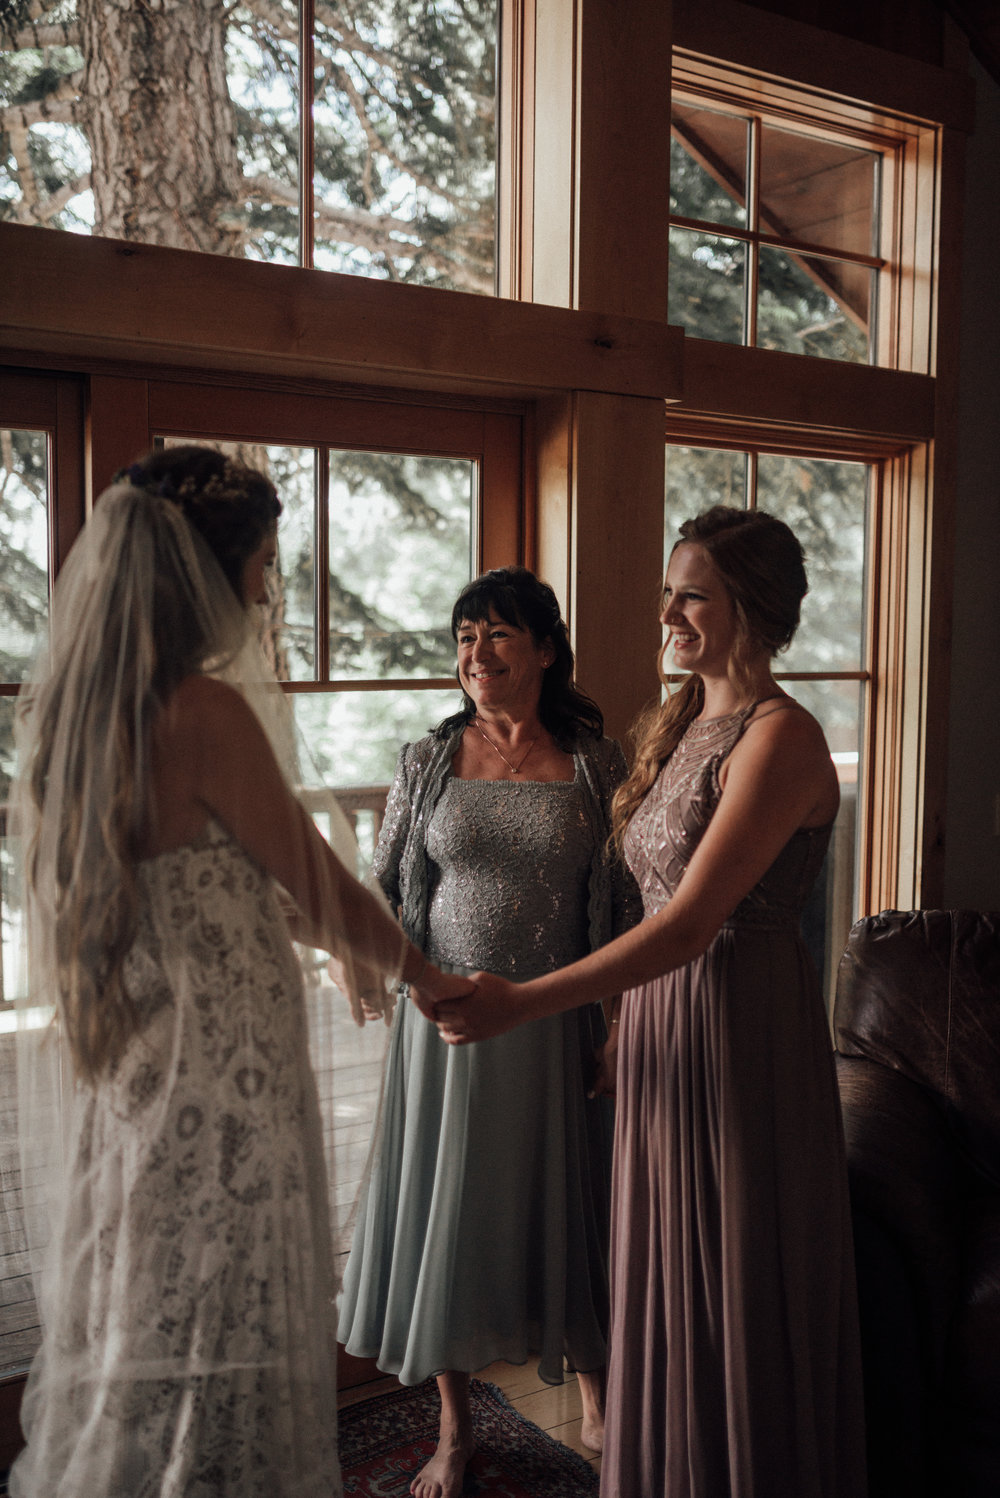 may-wedding-dancing-pines-sierraville-wedding-ca-danielle-kyle-junebug-photography-lake-tahoe-1-414.jpg